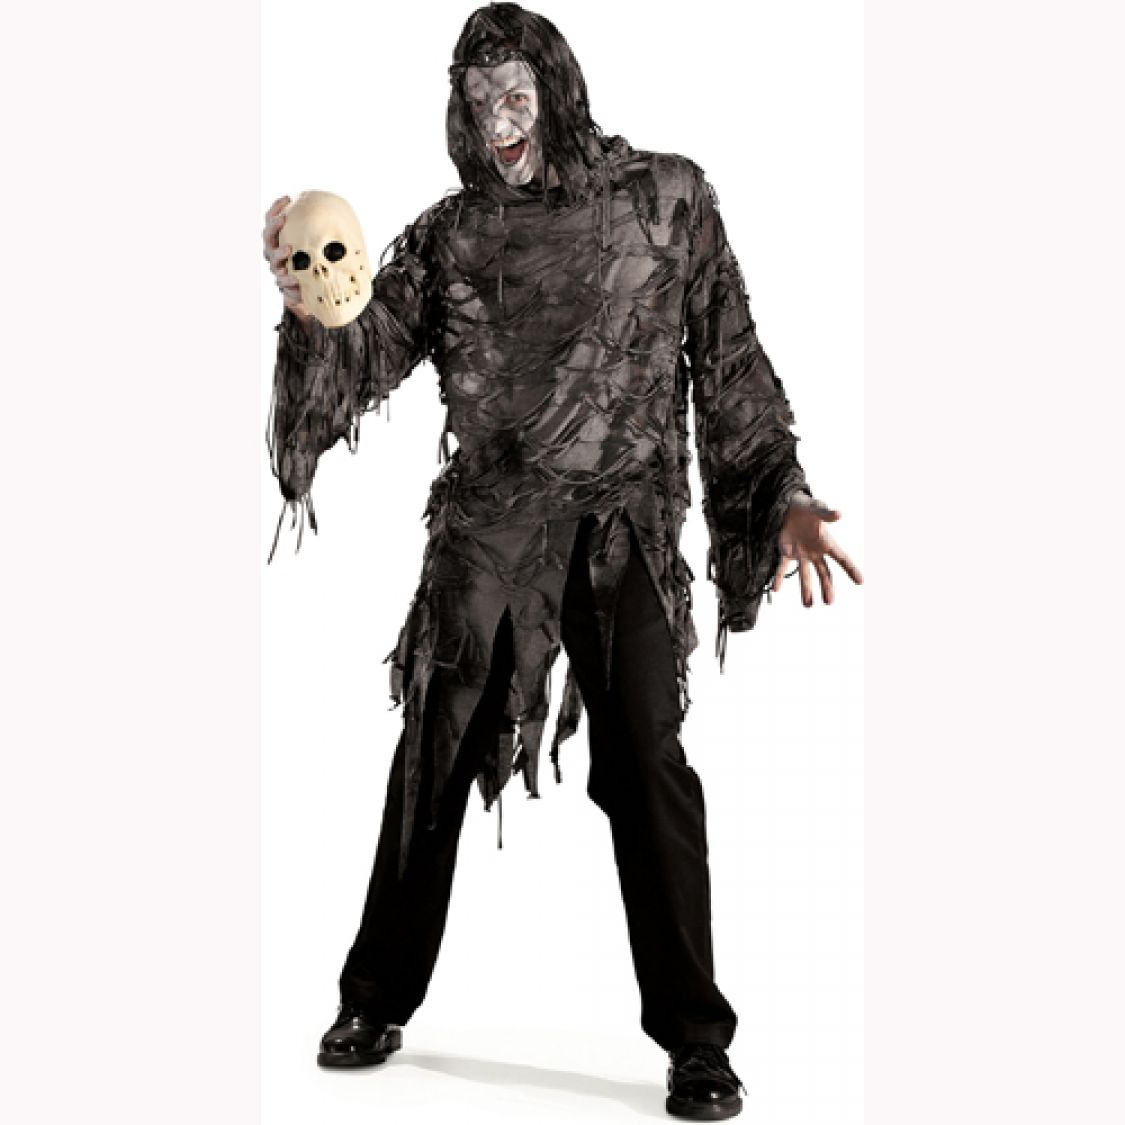 d guisement gruesome homme halloween. Black Bedroom Furniture Sets. Home Design Ideas